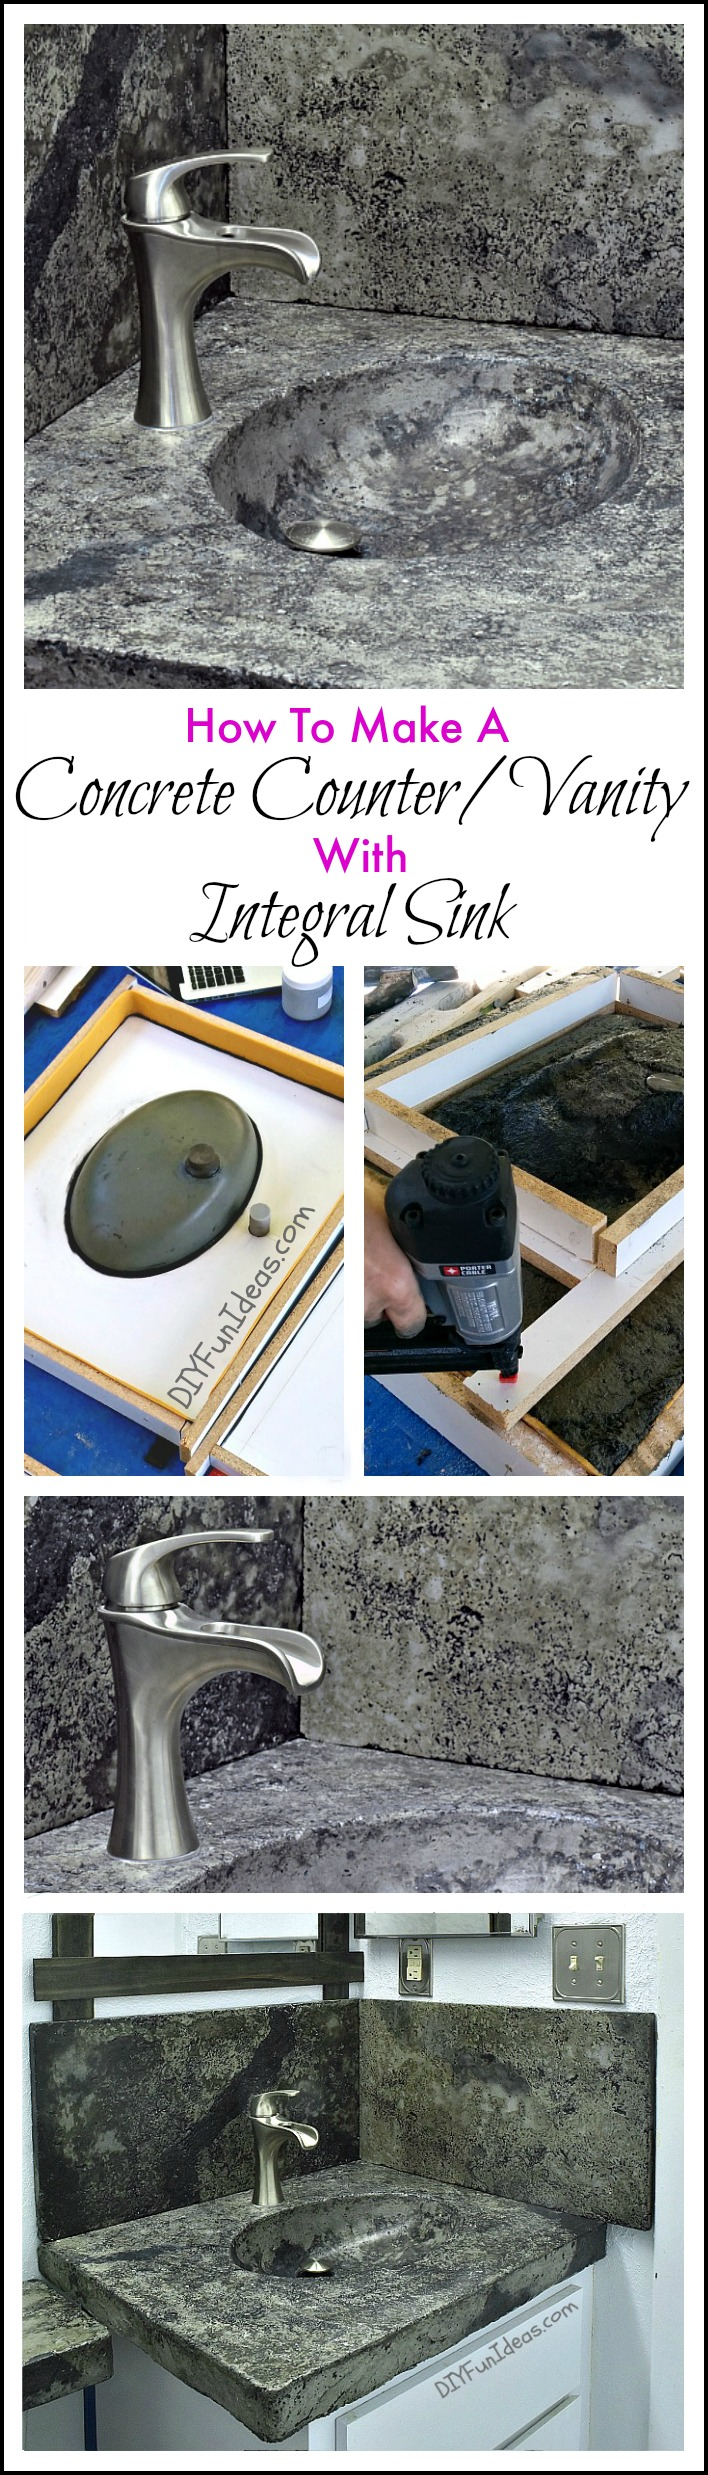 Concrete Sink Diy How To Make A Concrete Countertop Or Vanity With Integral Sink